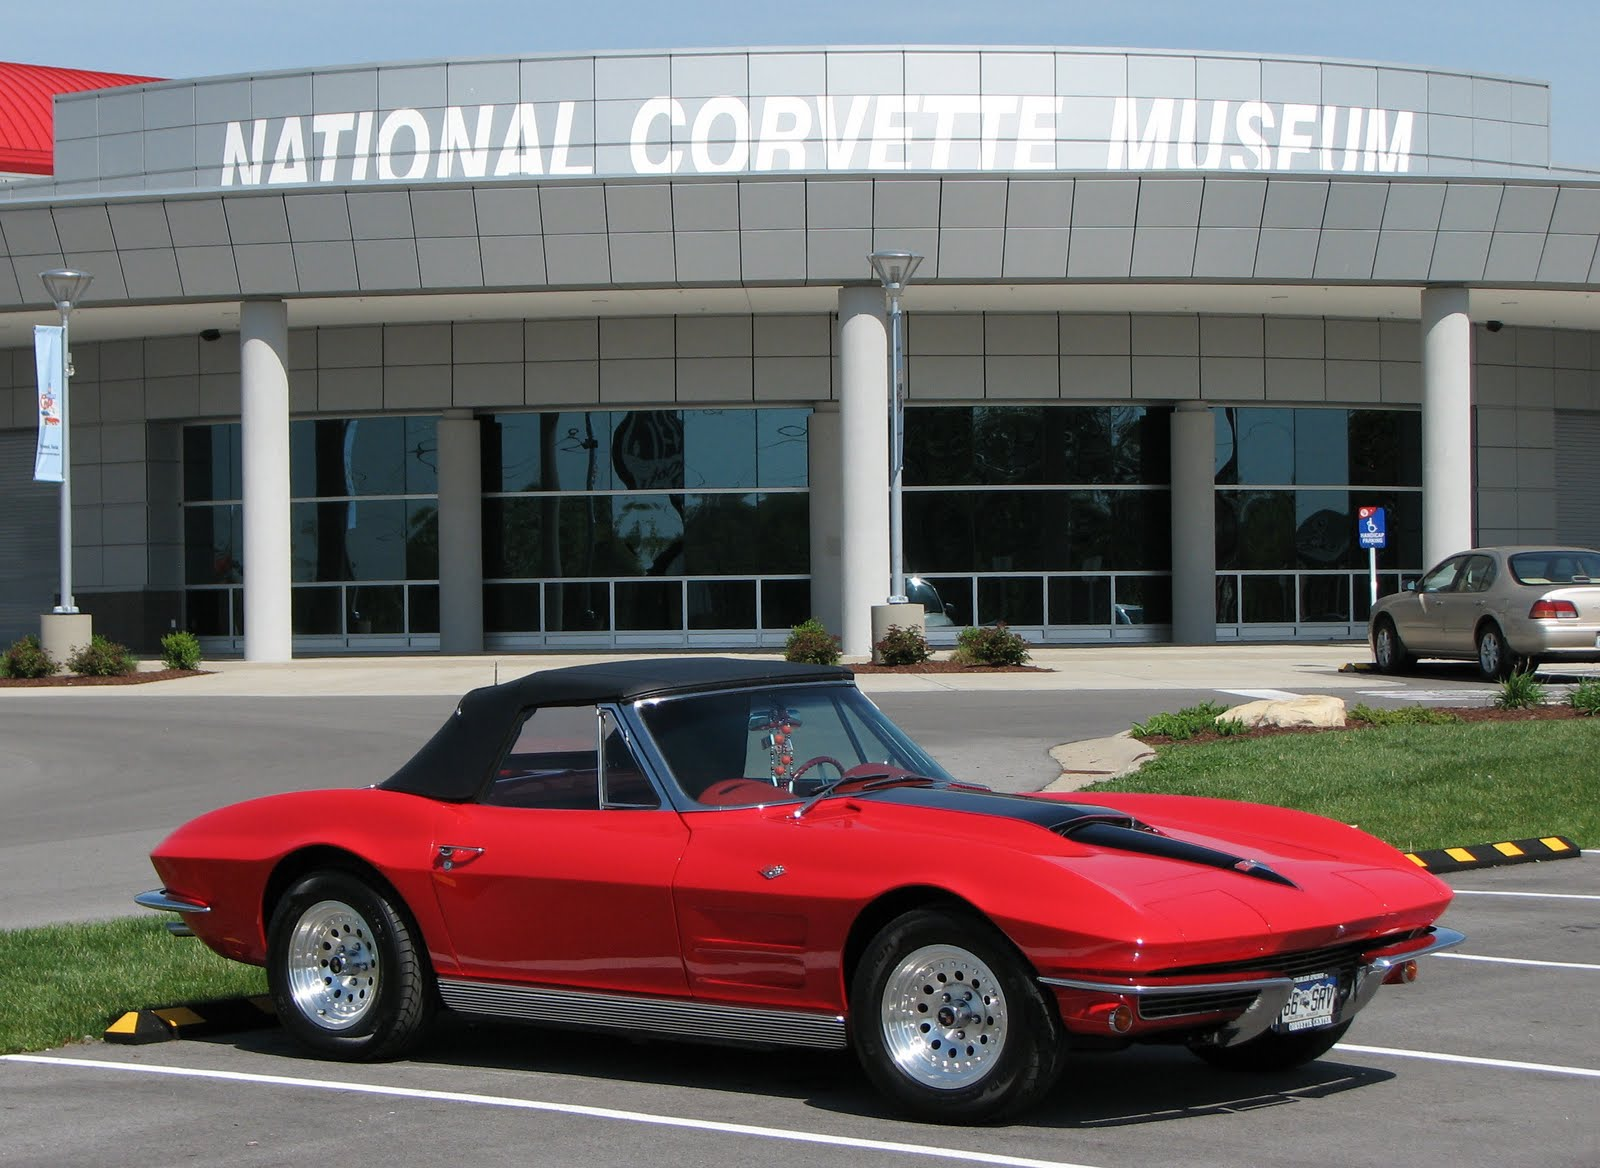 1963 corvette road trip corvette museum and gm plant in kentucky. Cars Review. Best American Auto & Cars Review